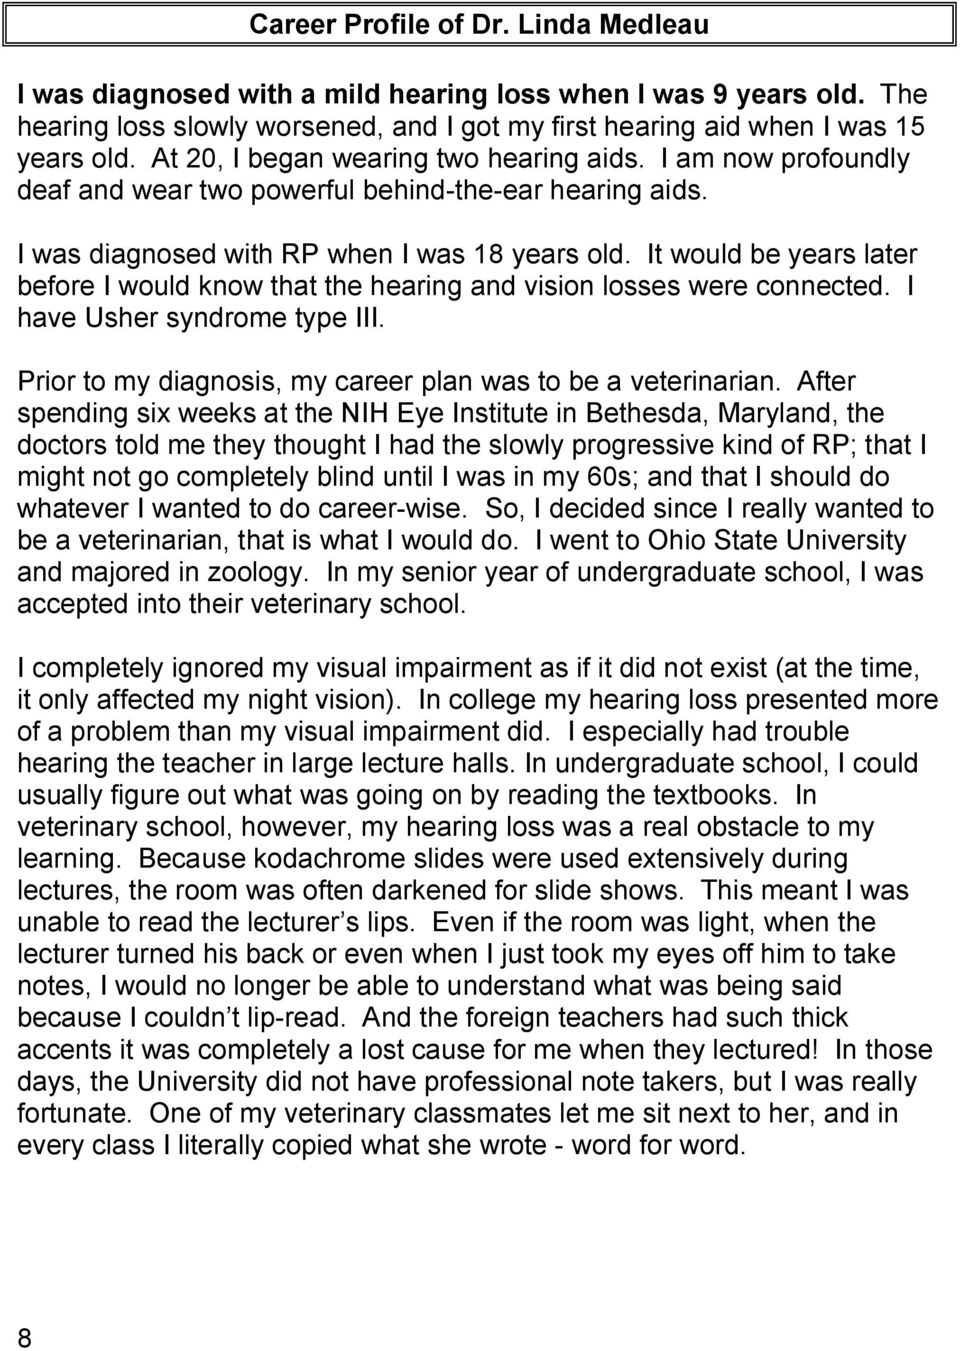 It would be years later before I would know that the hearing and vision losses were connected. I have Usher syndrome type III. Prior to my diagnosis, my career plan was to be a veterinarian.